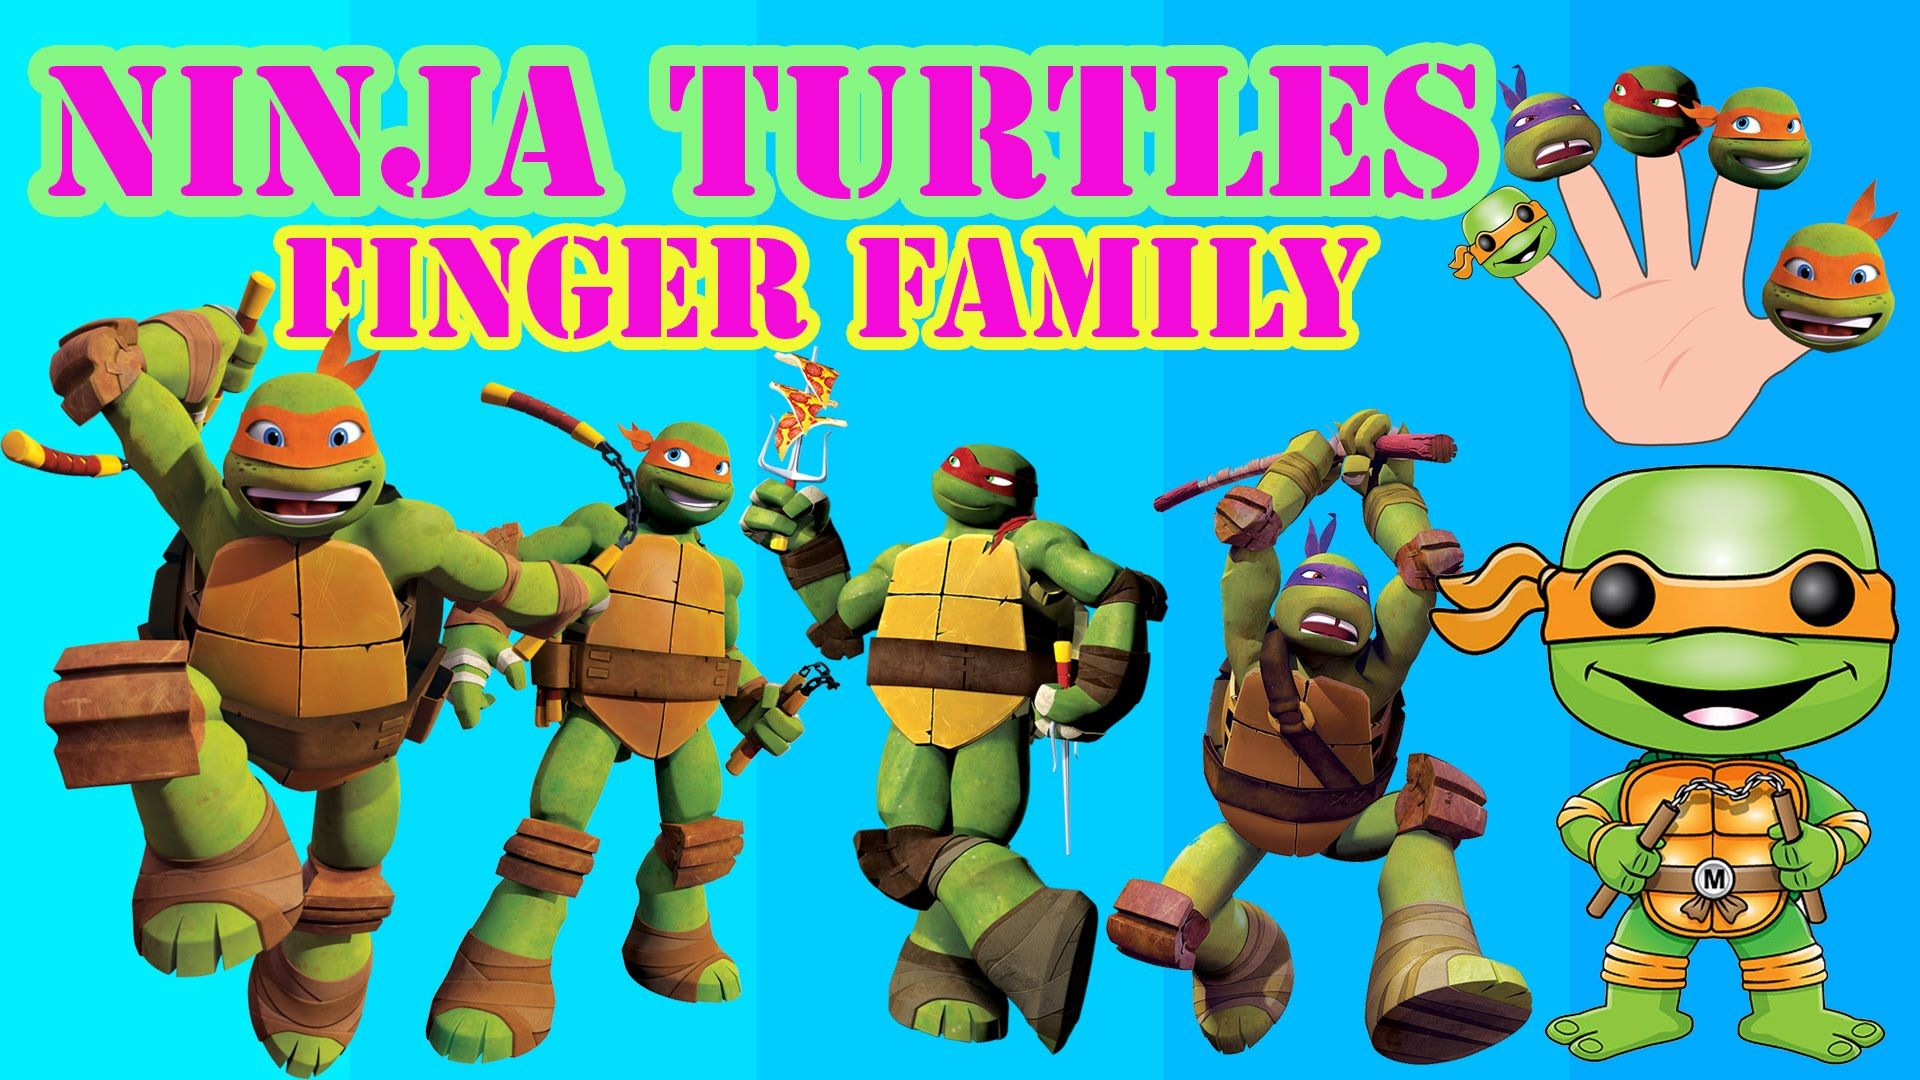 Ninja Turtles Cartoon Finger Family Nursery Rhyme For Kids